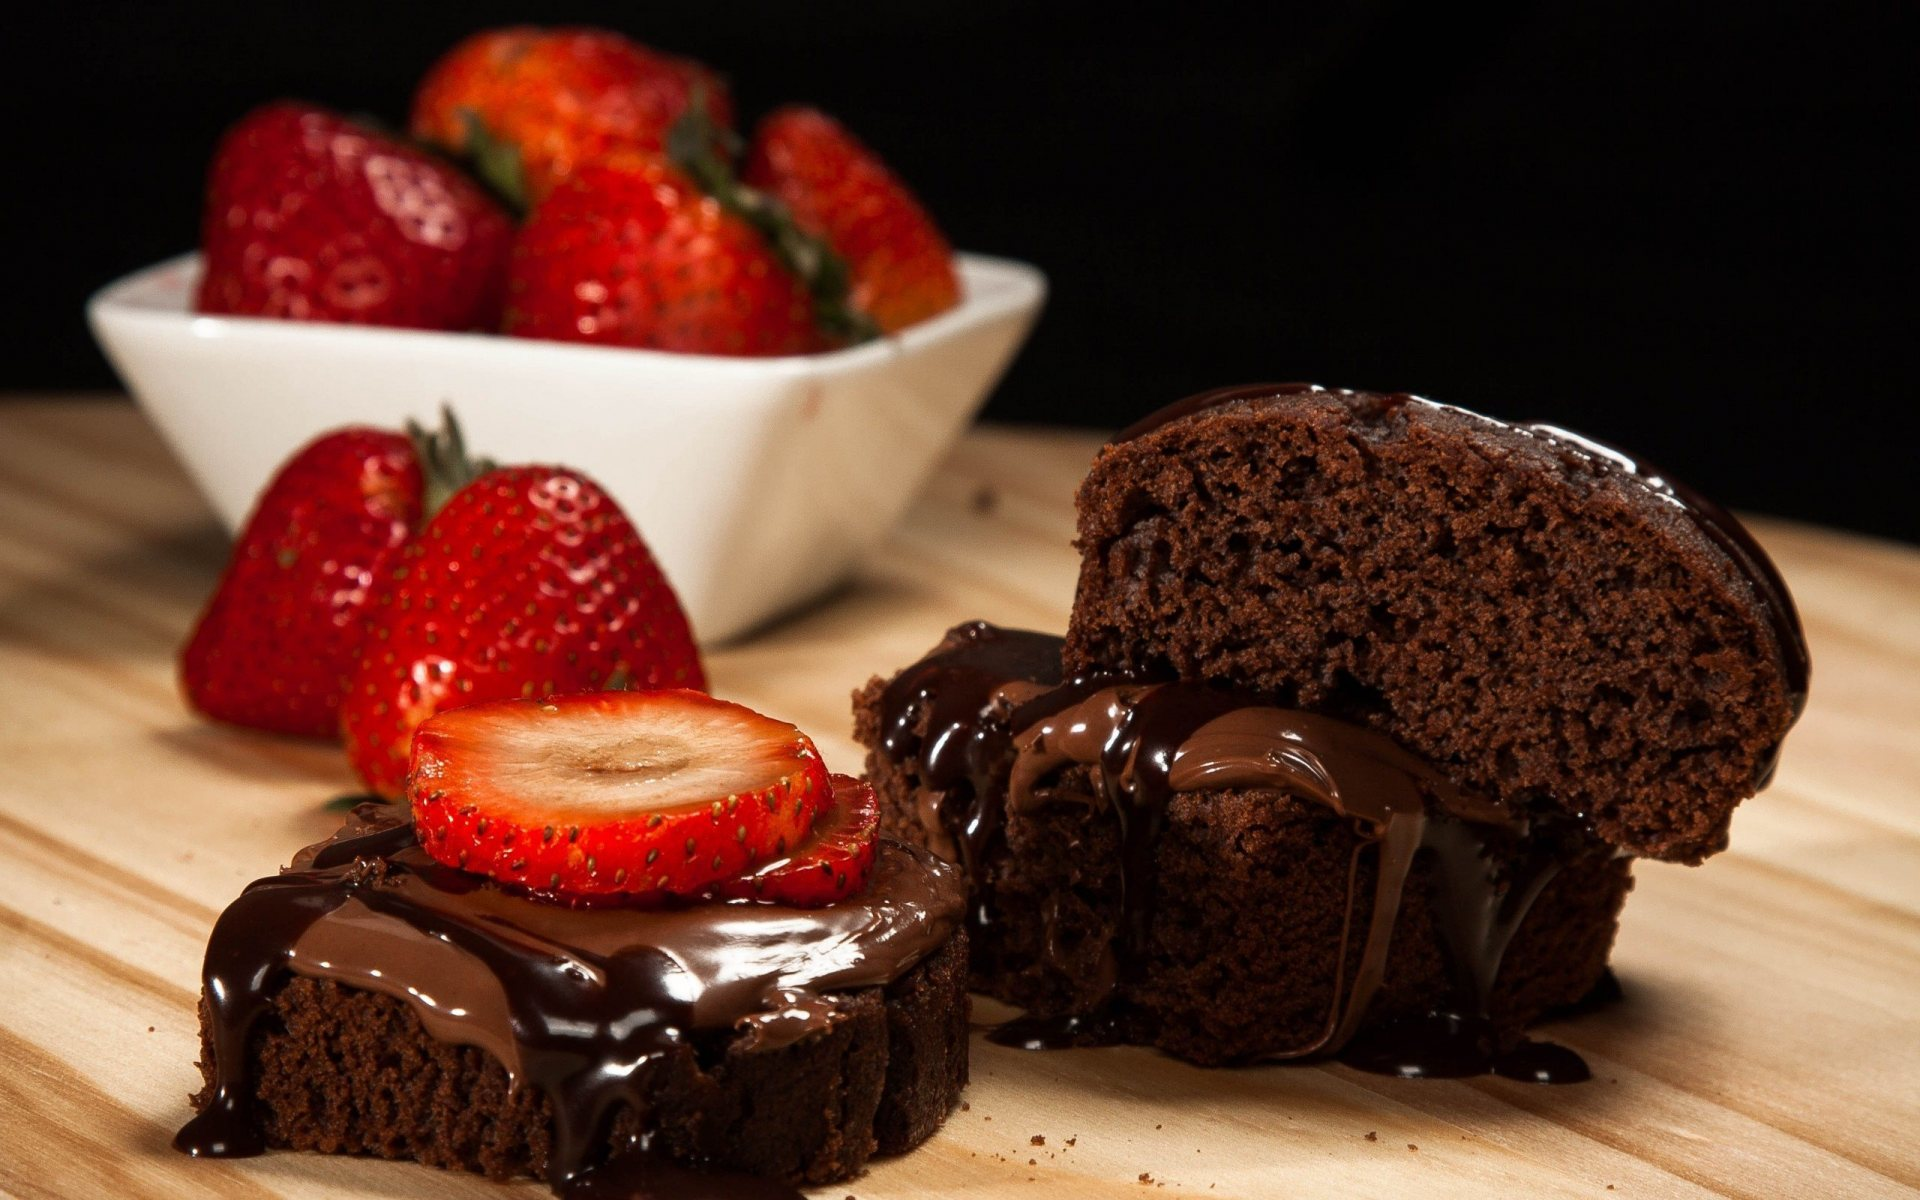 Chocolate Strawberry Cake Full HD Desktop Wallpapers 1080p 1920x1200